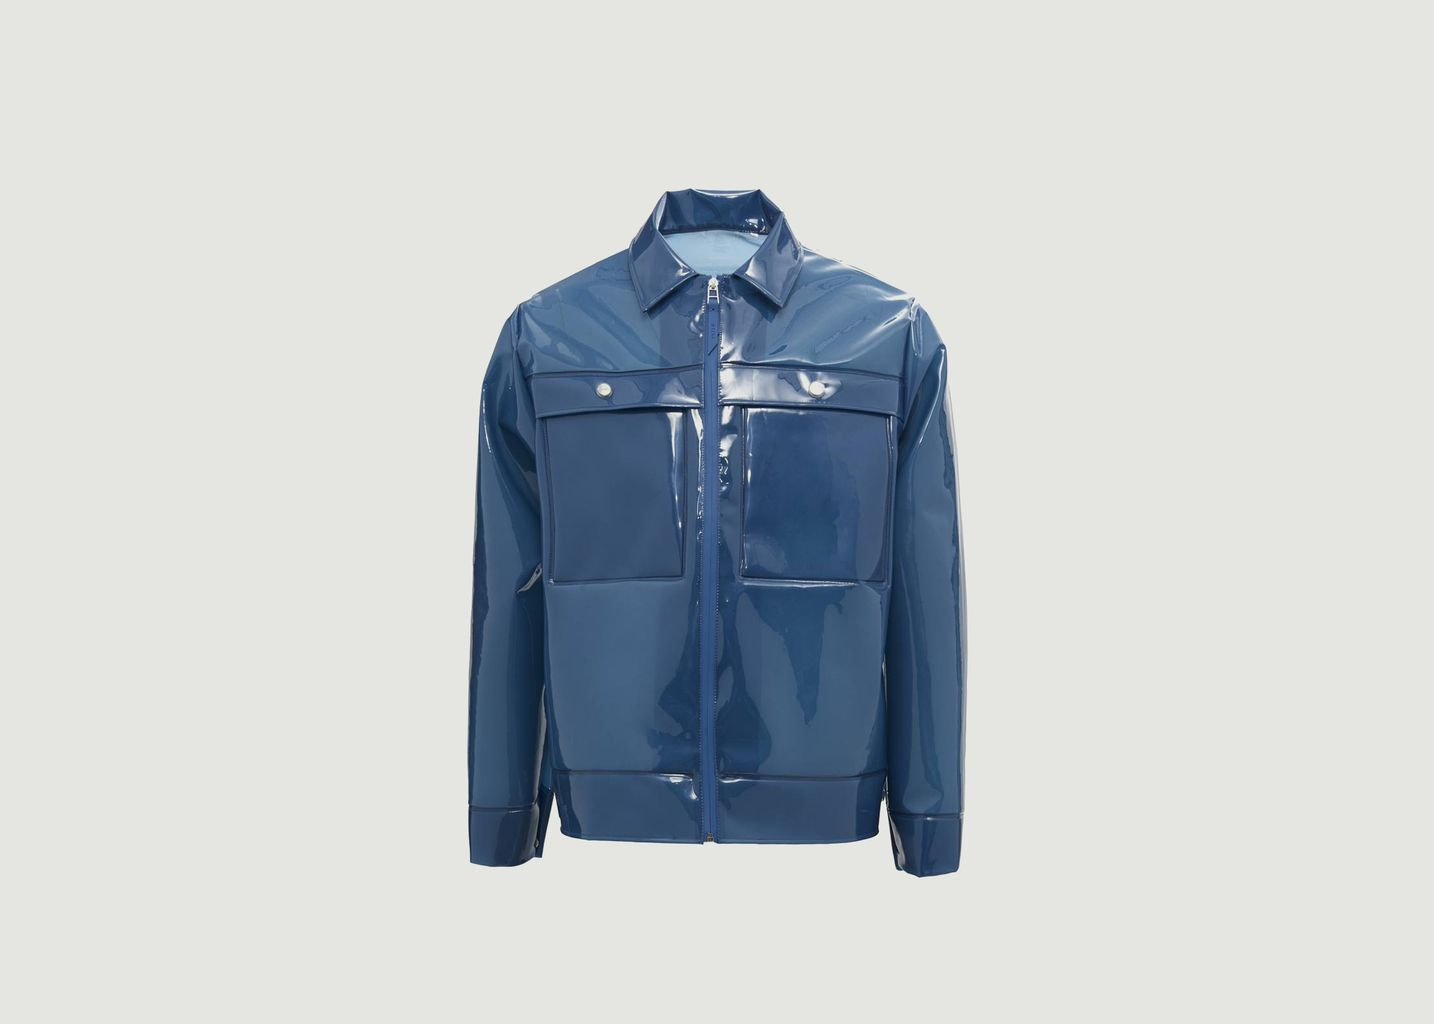 Boxy Veste L'exception Ltd Bleu Rains Uawbgg rCedBEQxoW